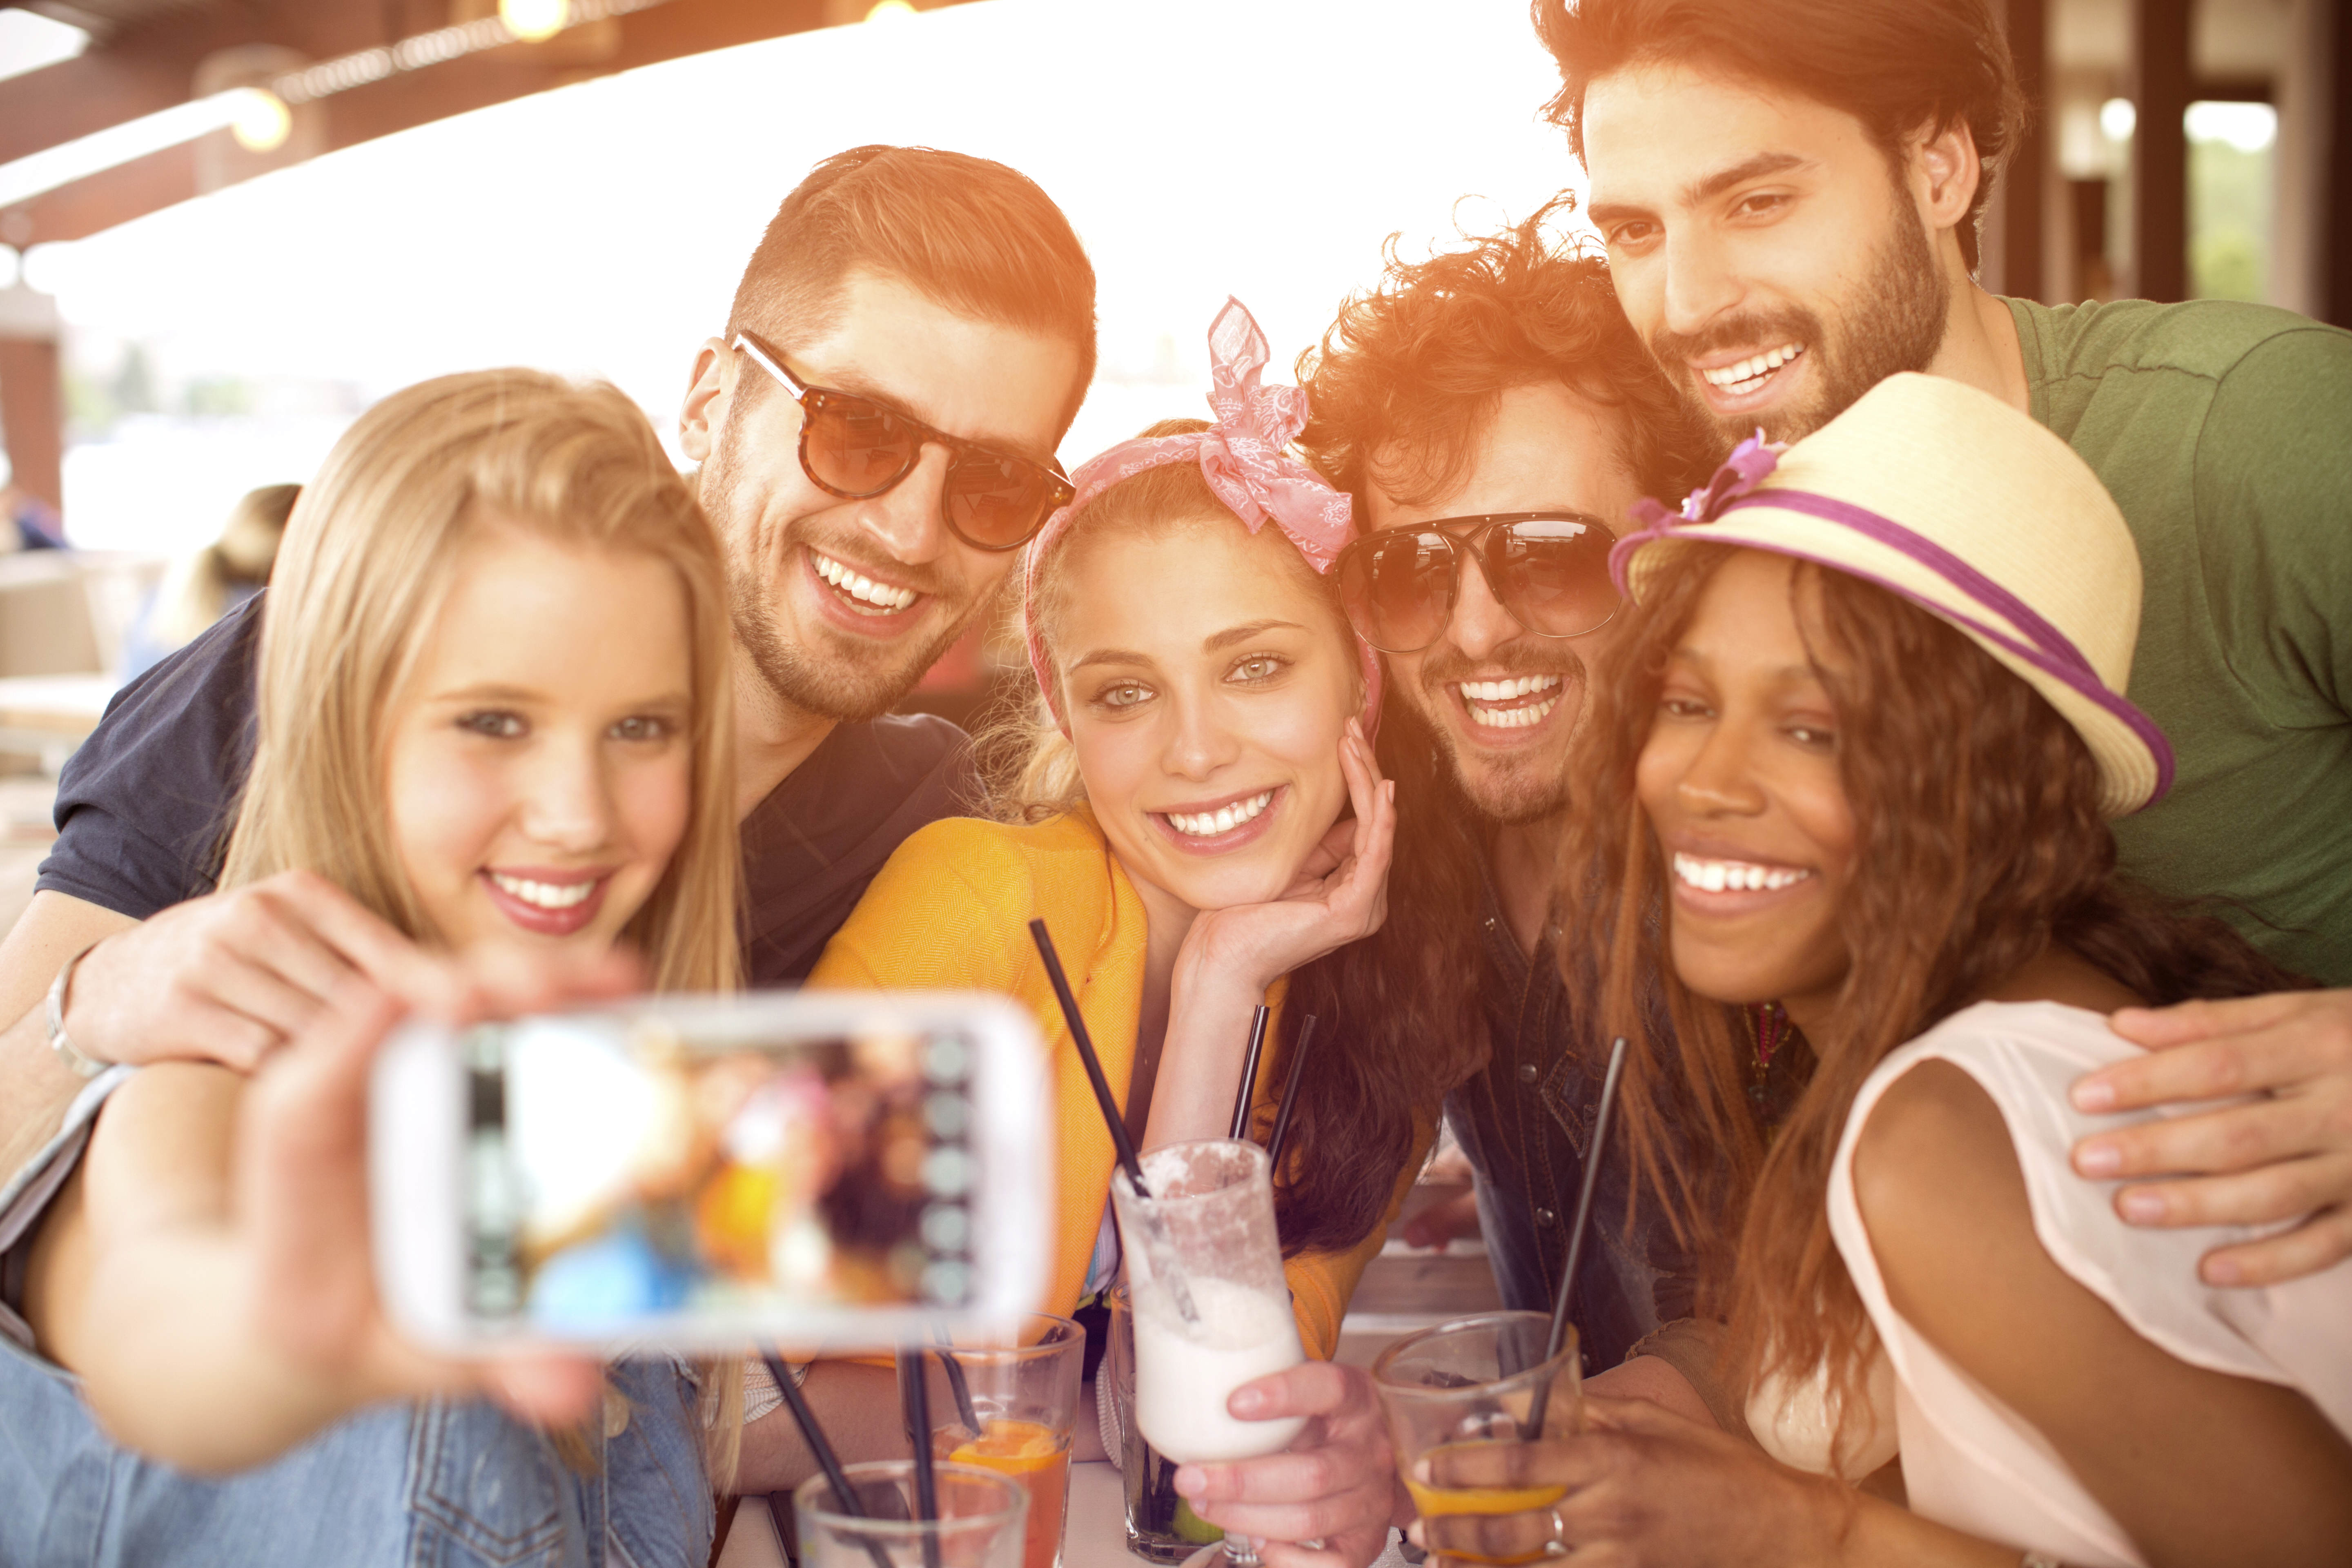 iStock 000040603472 XXXLarge Wingman Your Whole Squad With This New Tinder Style App